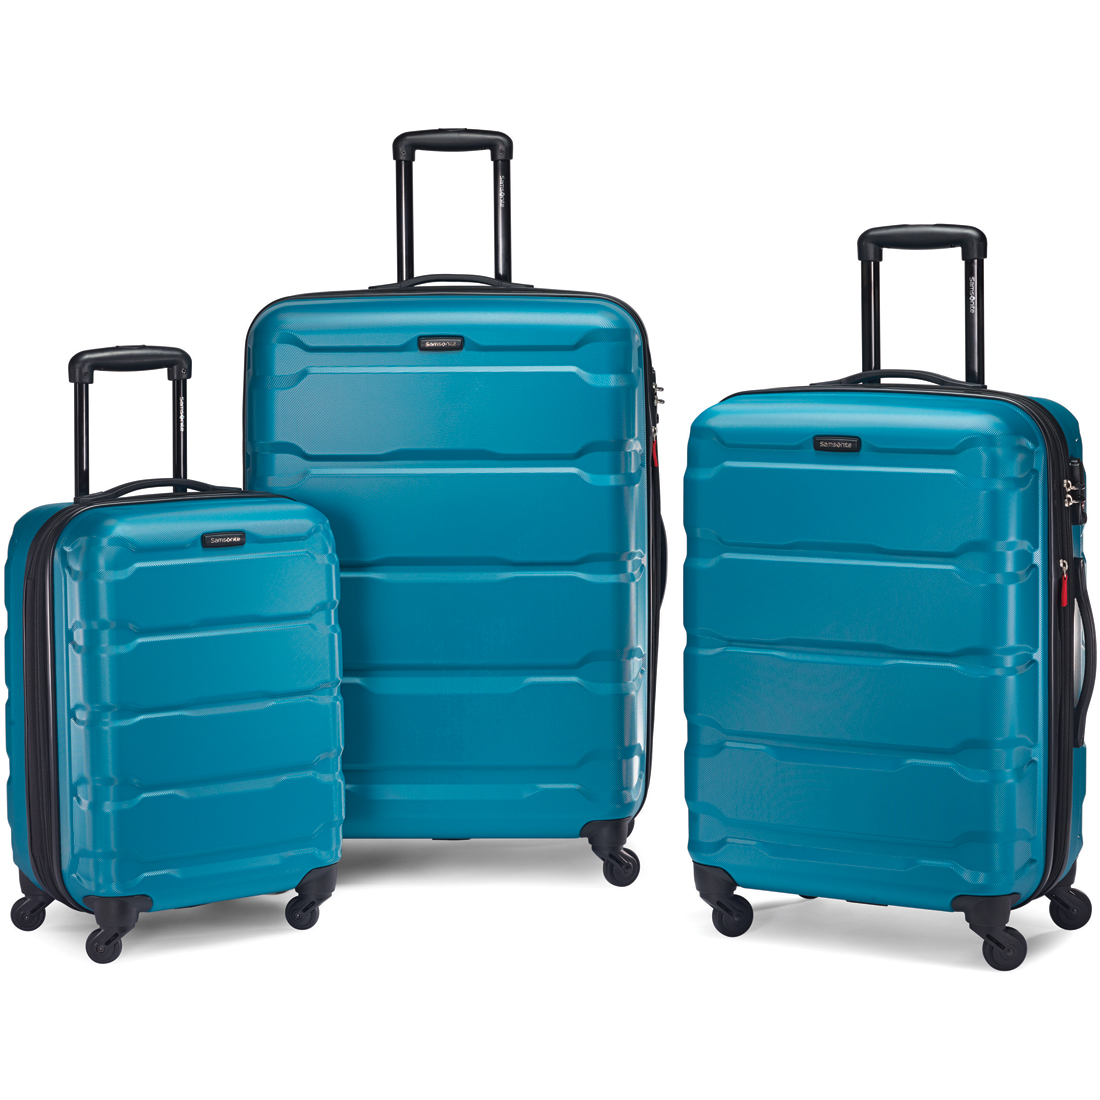 Samsonite-Omni-24-Inch-Hardside-Spinner-Luggage-Suitcase-Choose-Color thumbnail 32